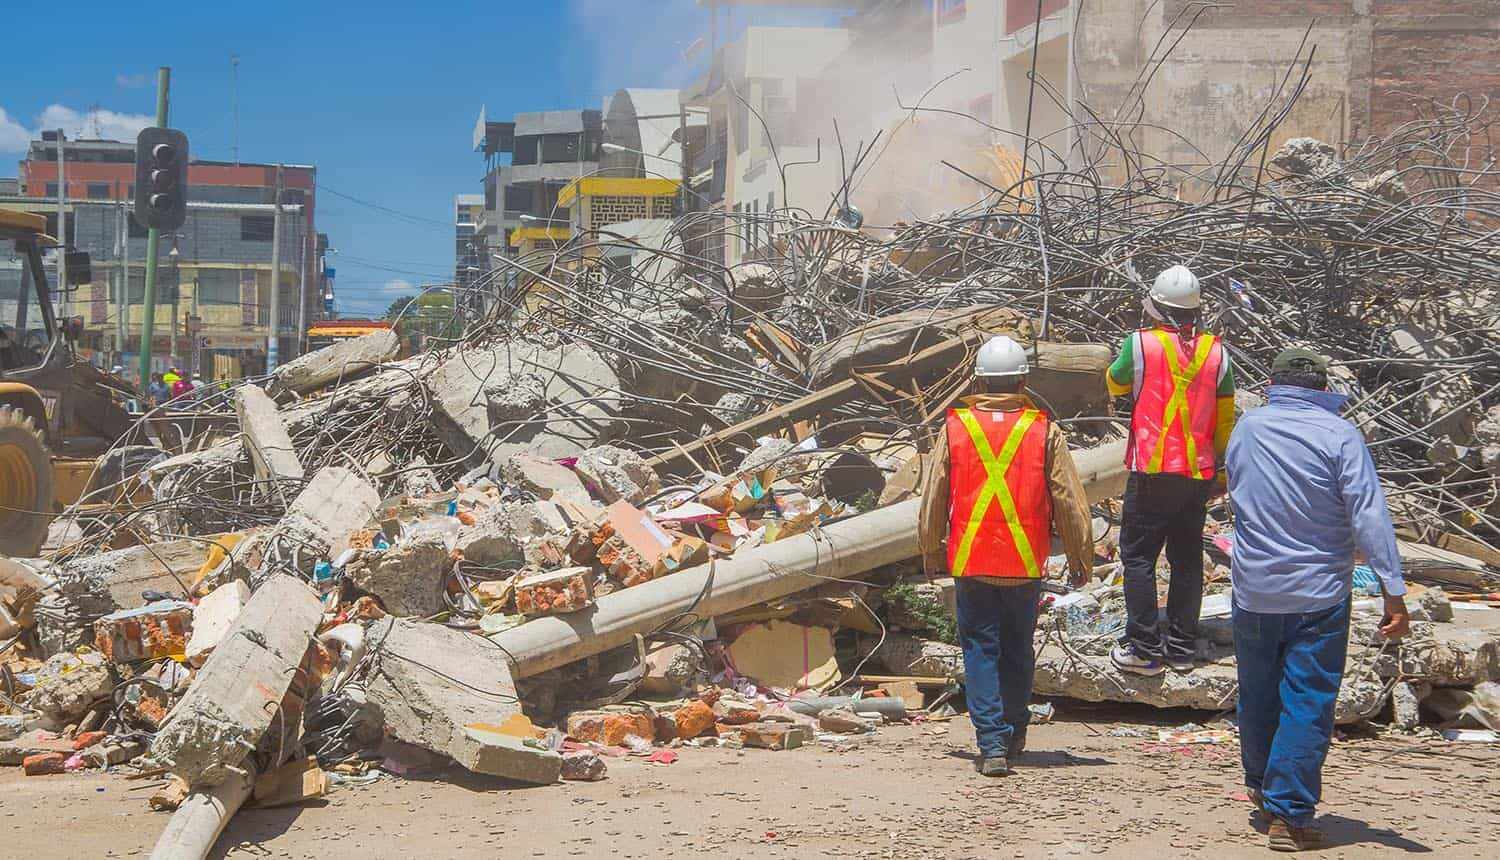 Rescue team making recovery efforts after earthquake showing importance of data recovery and protection planning